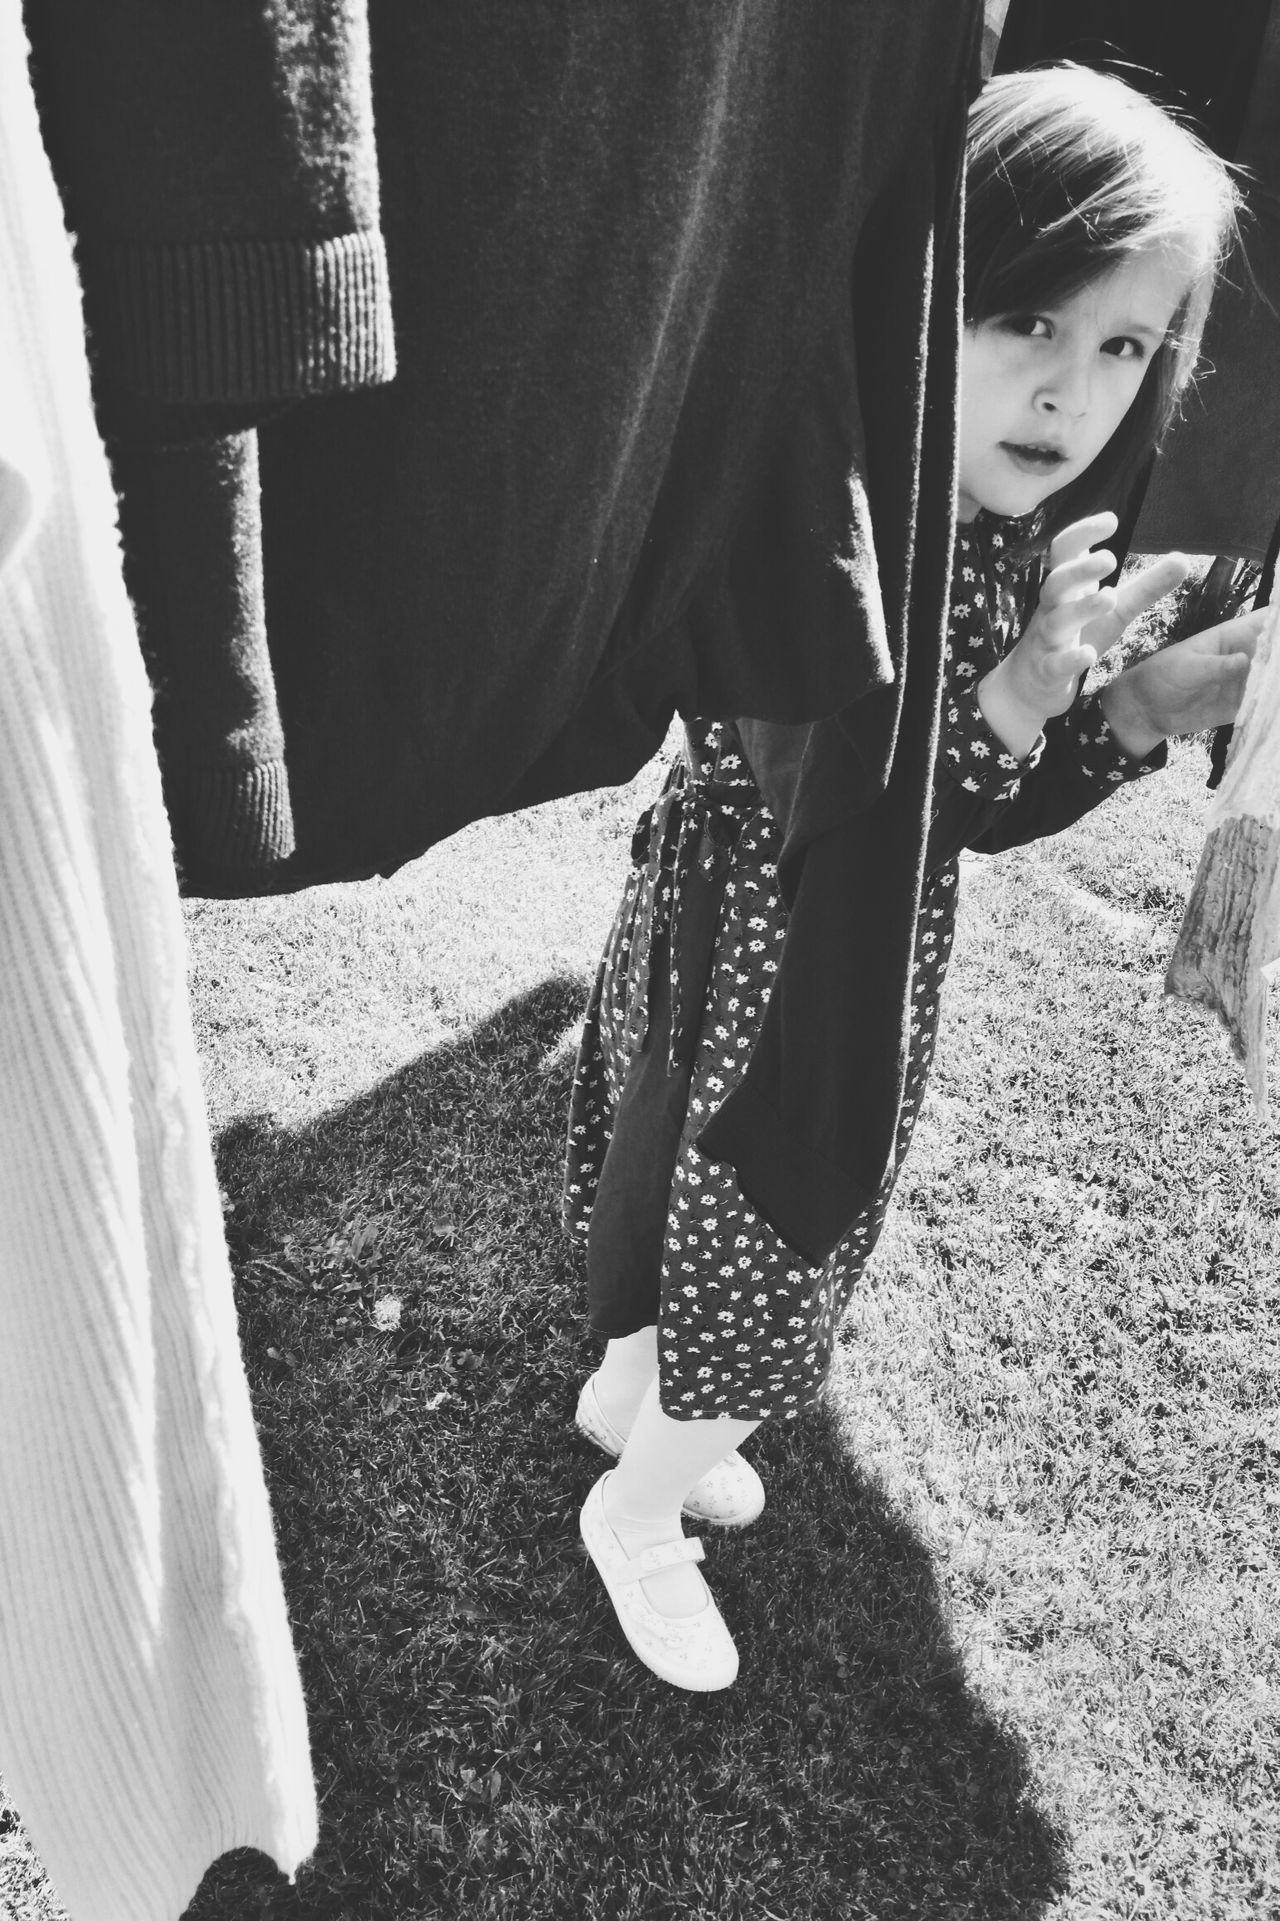 Girl Hiding Laundry Black And White Black & White Blackandwhite Photography Preschool Age Preschooler Looking Into The Camera Portrait Childhood Lifestyles Real People Outdoors Standing Dress The Portraitist - 2017 EyeEm Awards Live For The Story